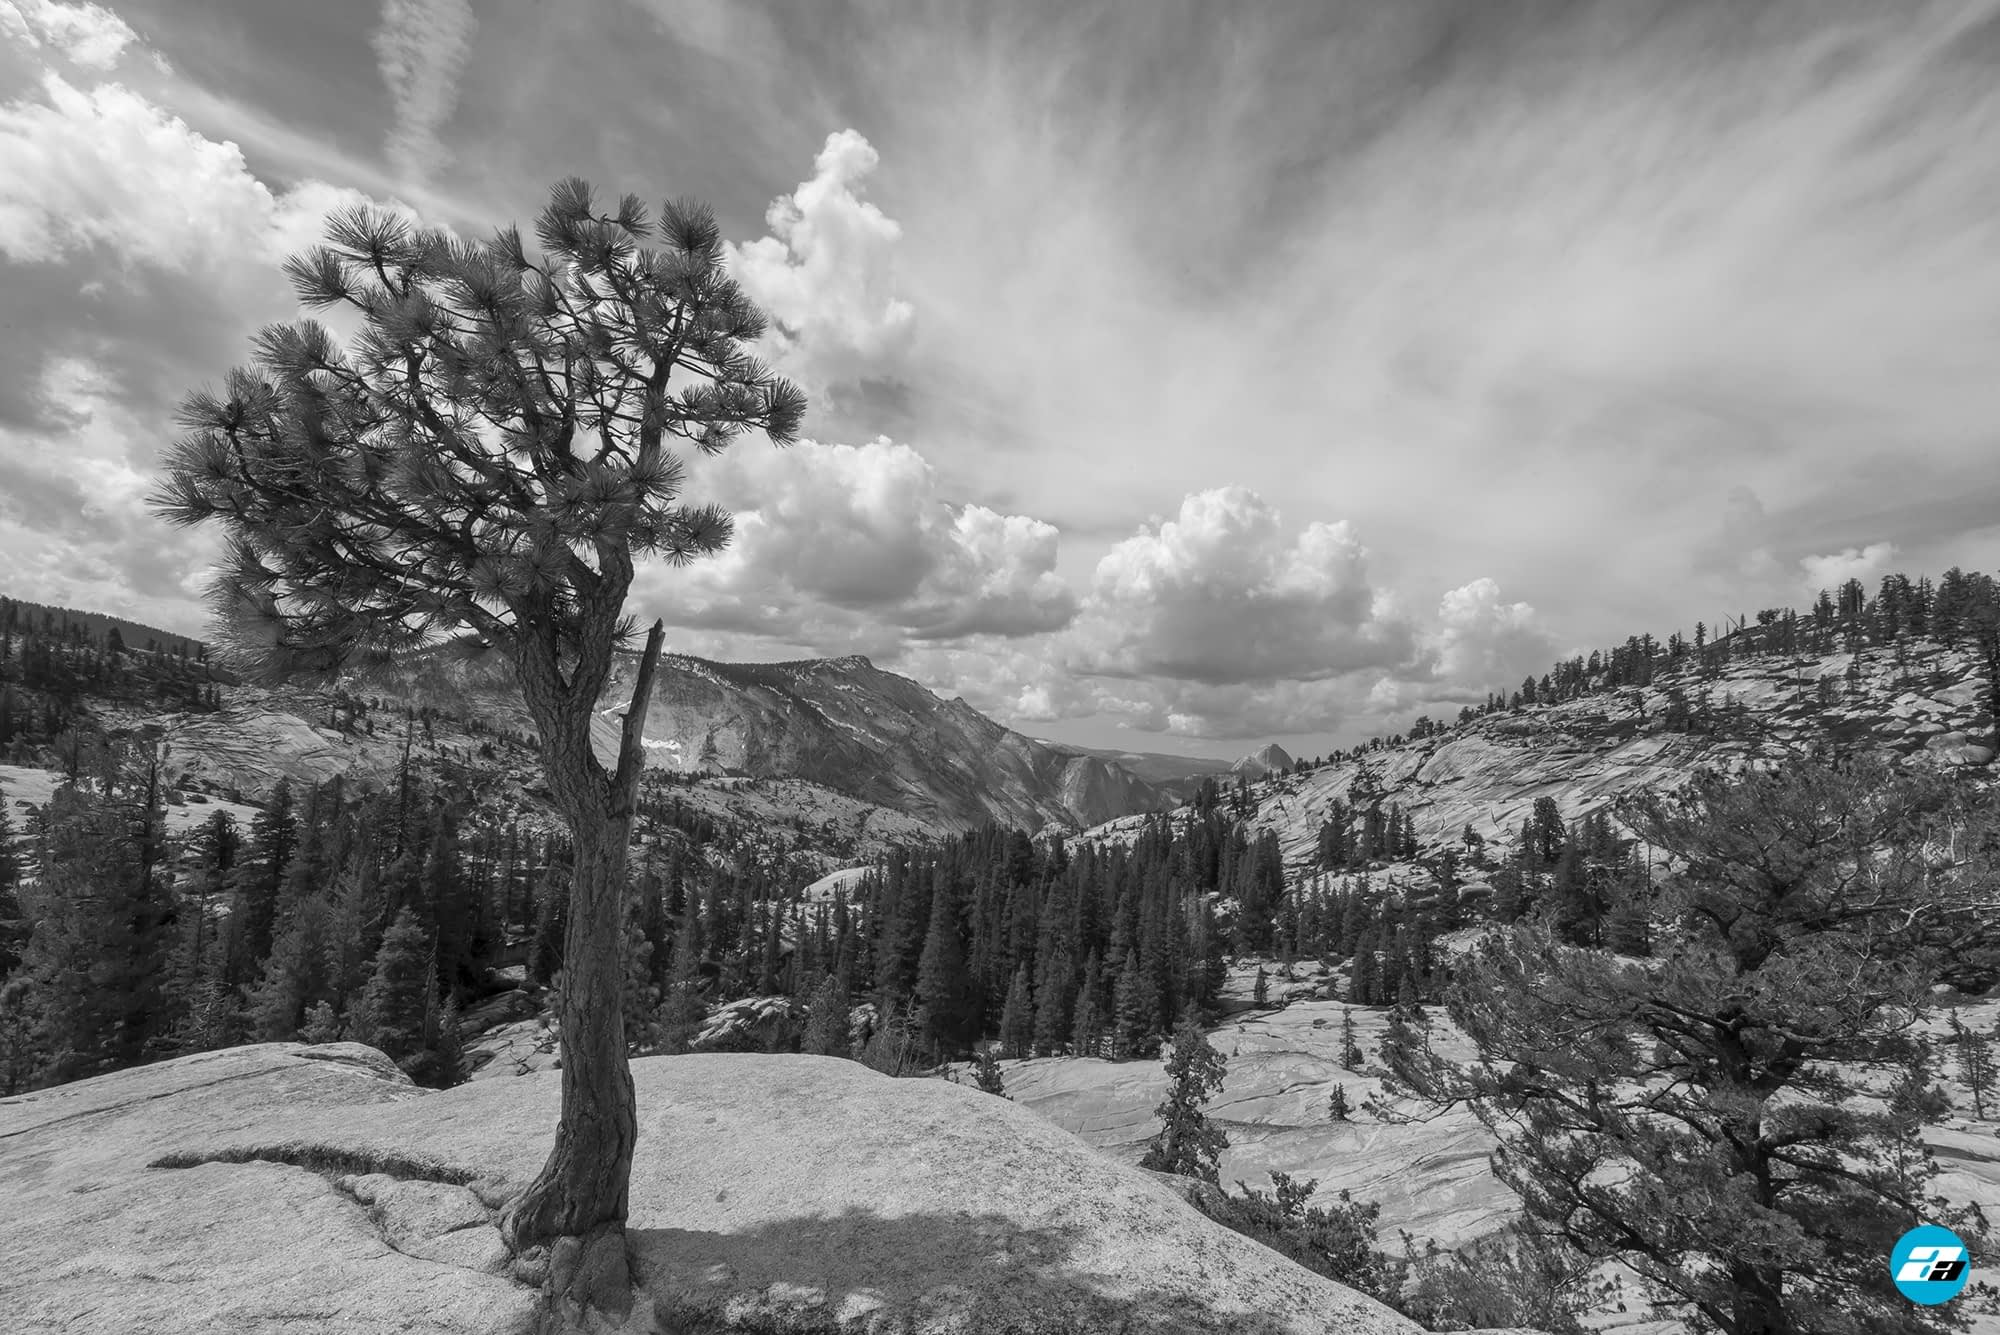 Yosemite National Park, California, USA. Landscape. Solitude. Mountain View. Olmsted Point